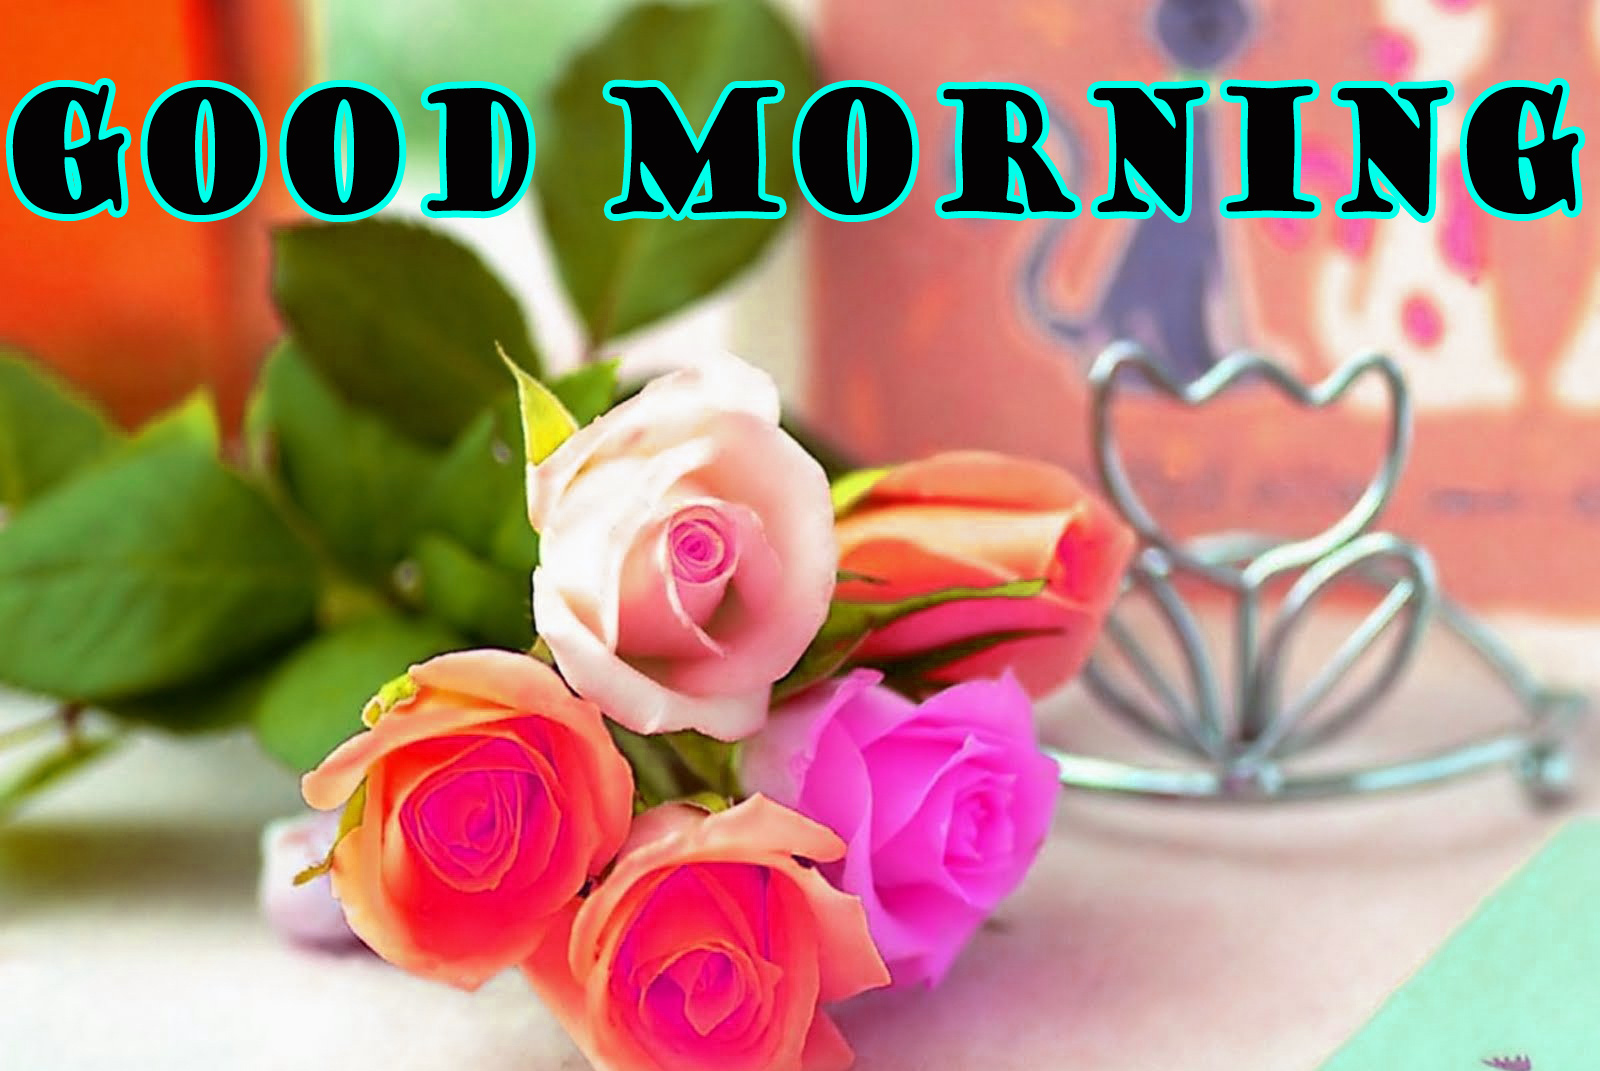 गुड मॉर्निंग New Wonderful Good Morning Images Photo Pictures Free Download